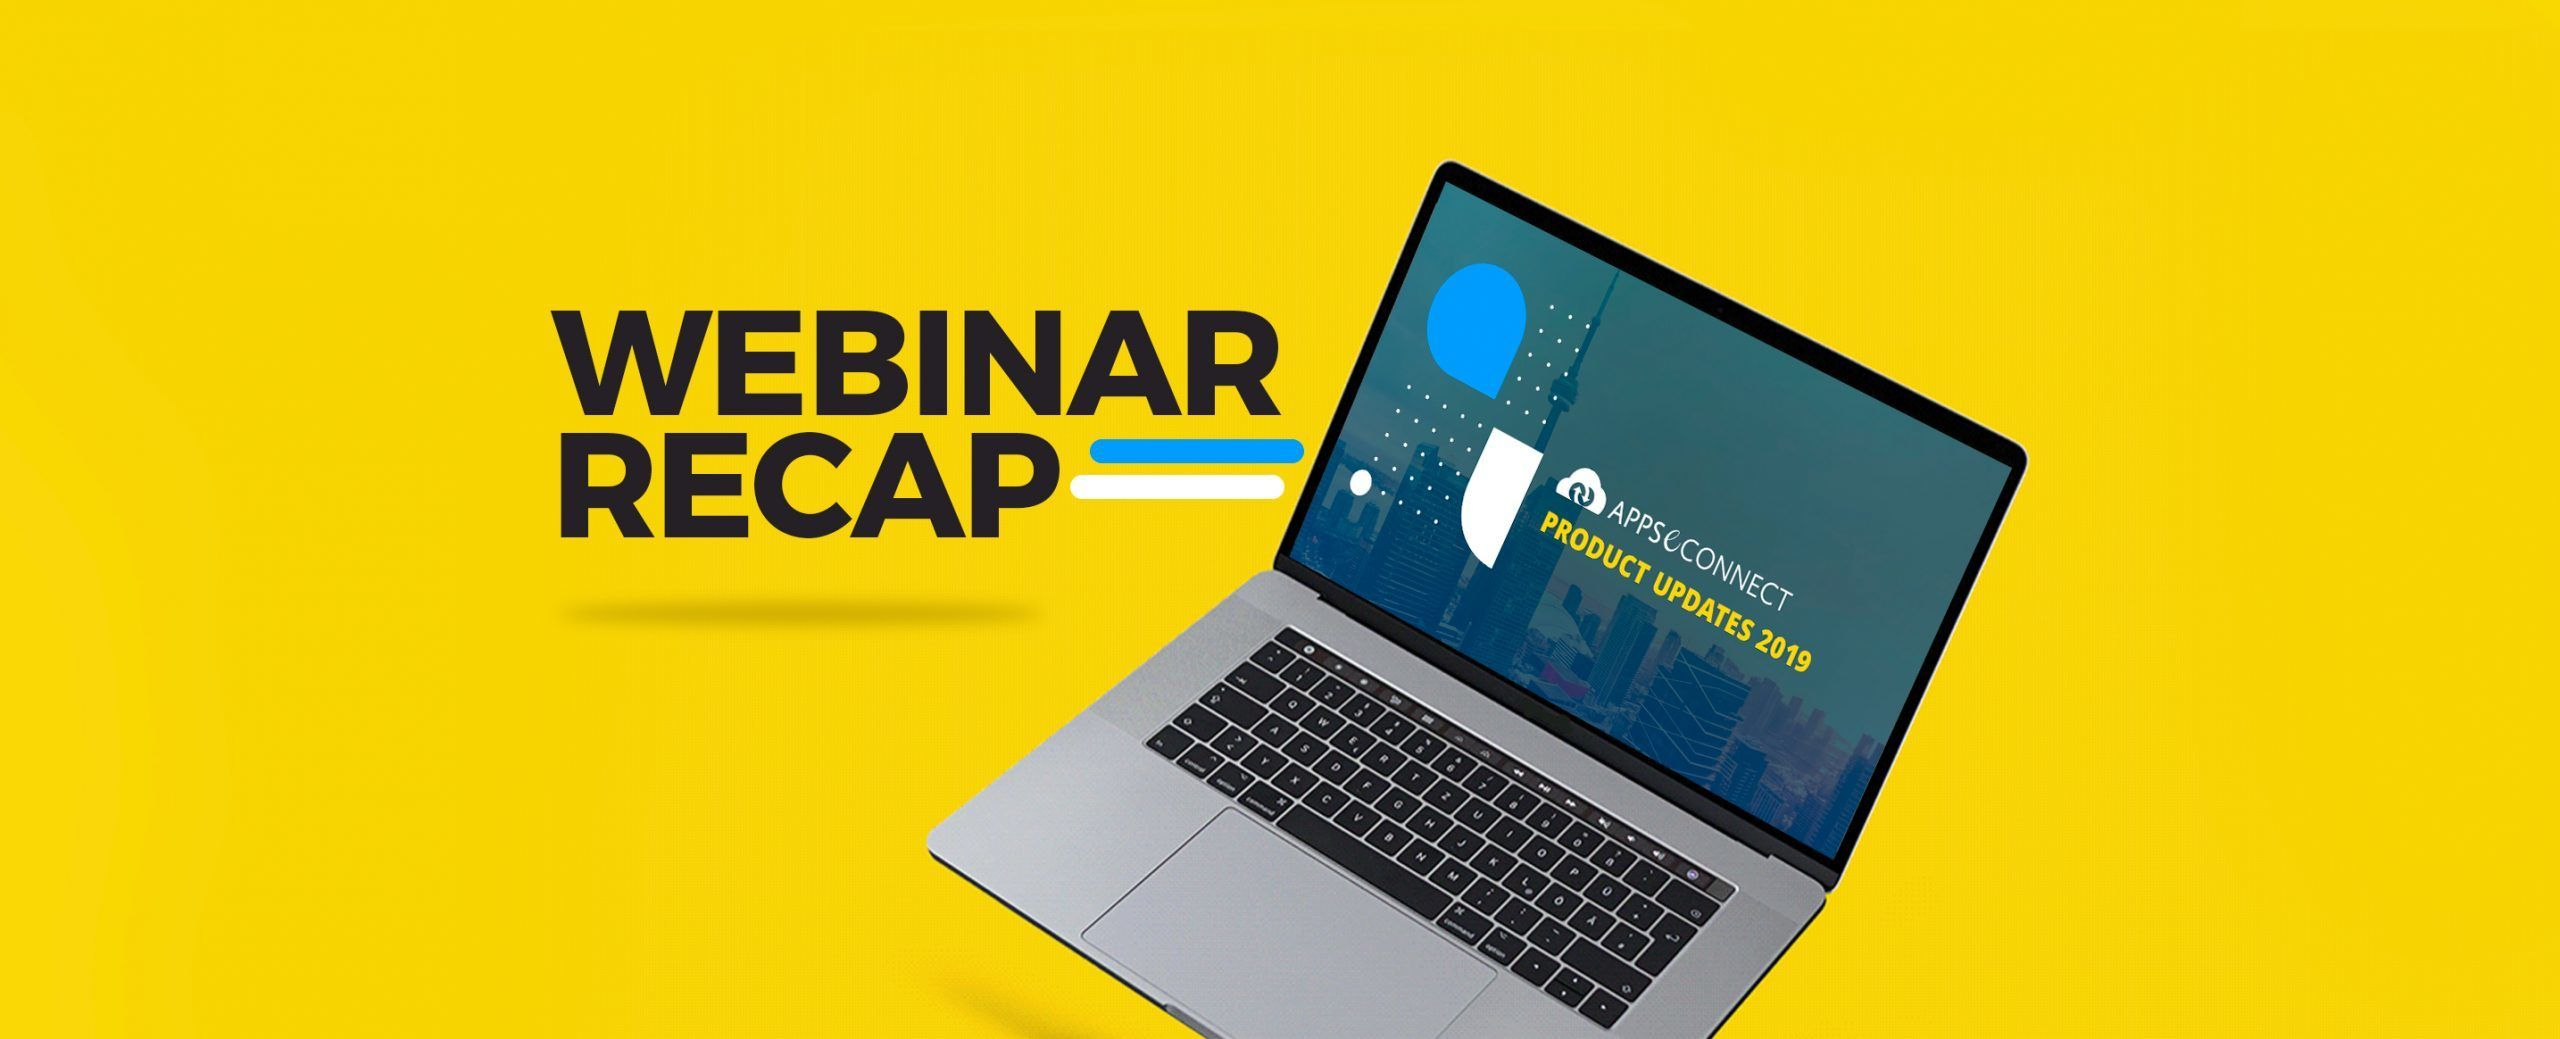 Webinar-WebinarRecap-APPSeCONNECT-Product-Updates2019-scaled.jpeg